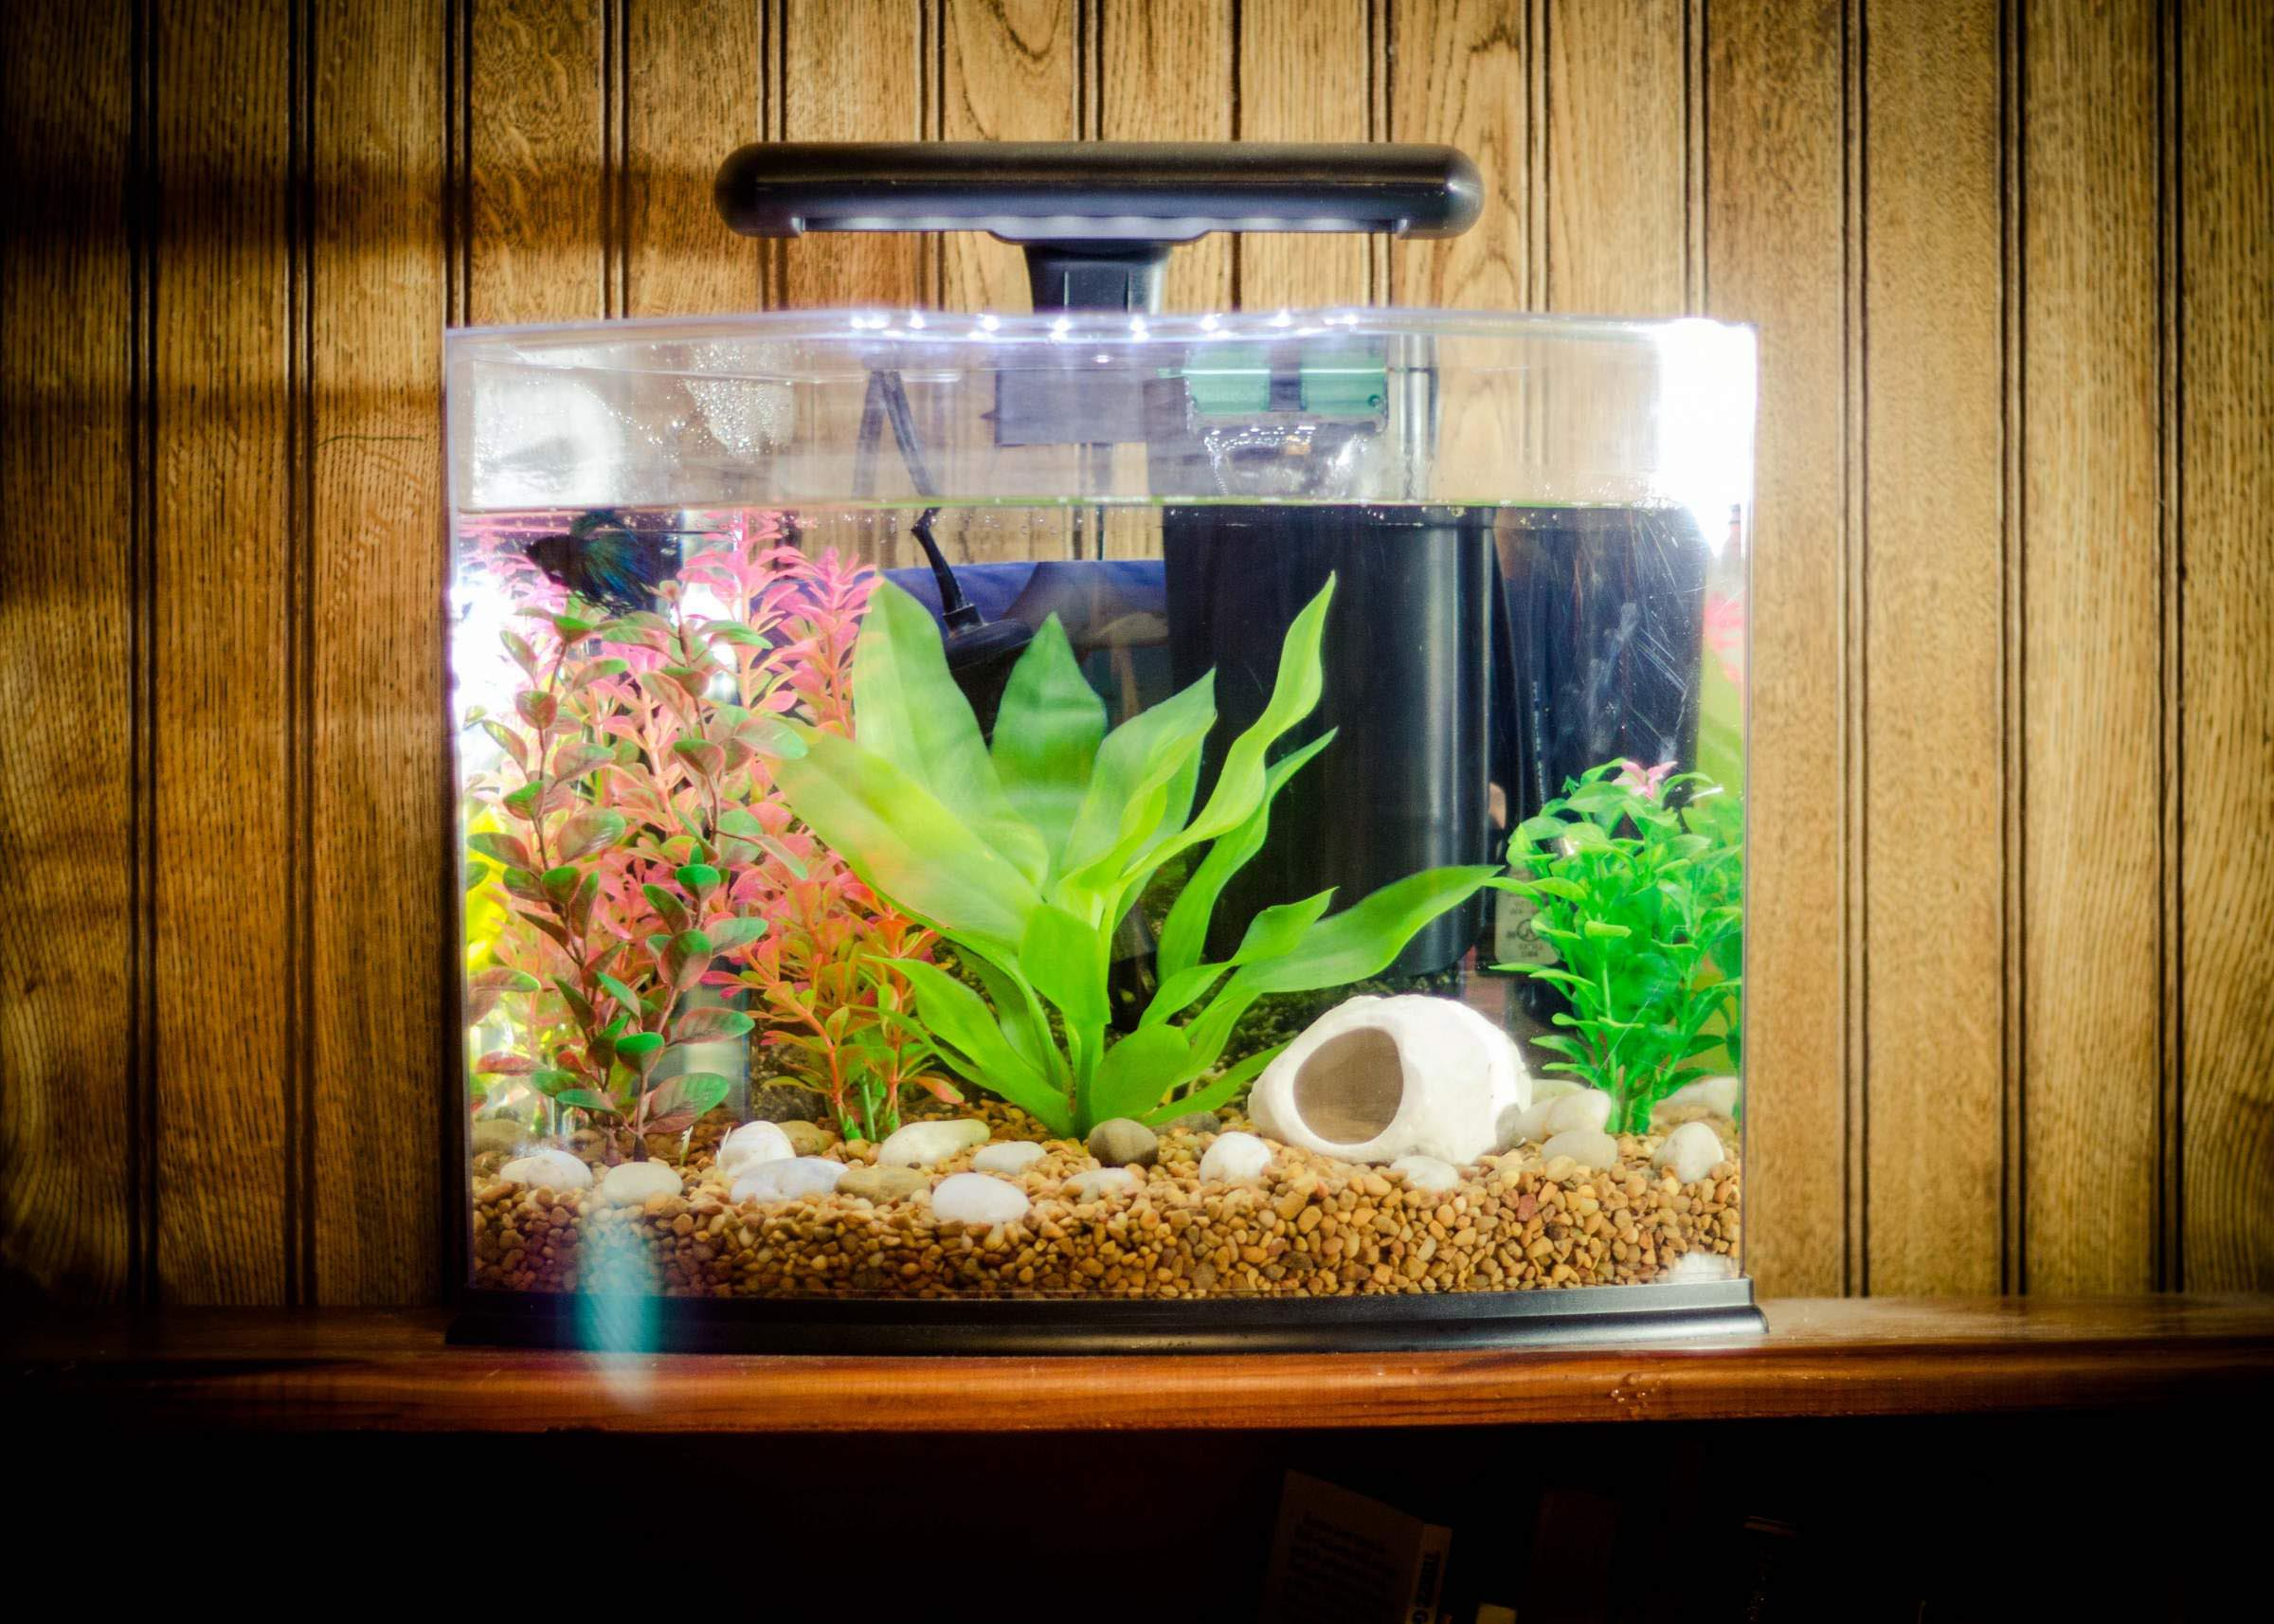 Cool fish tank ideas